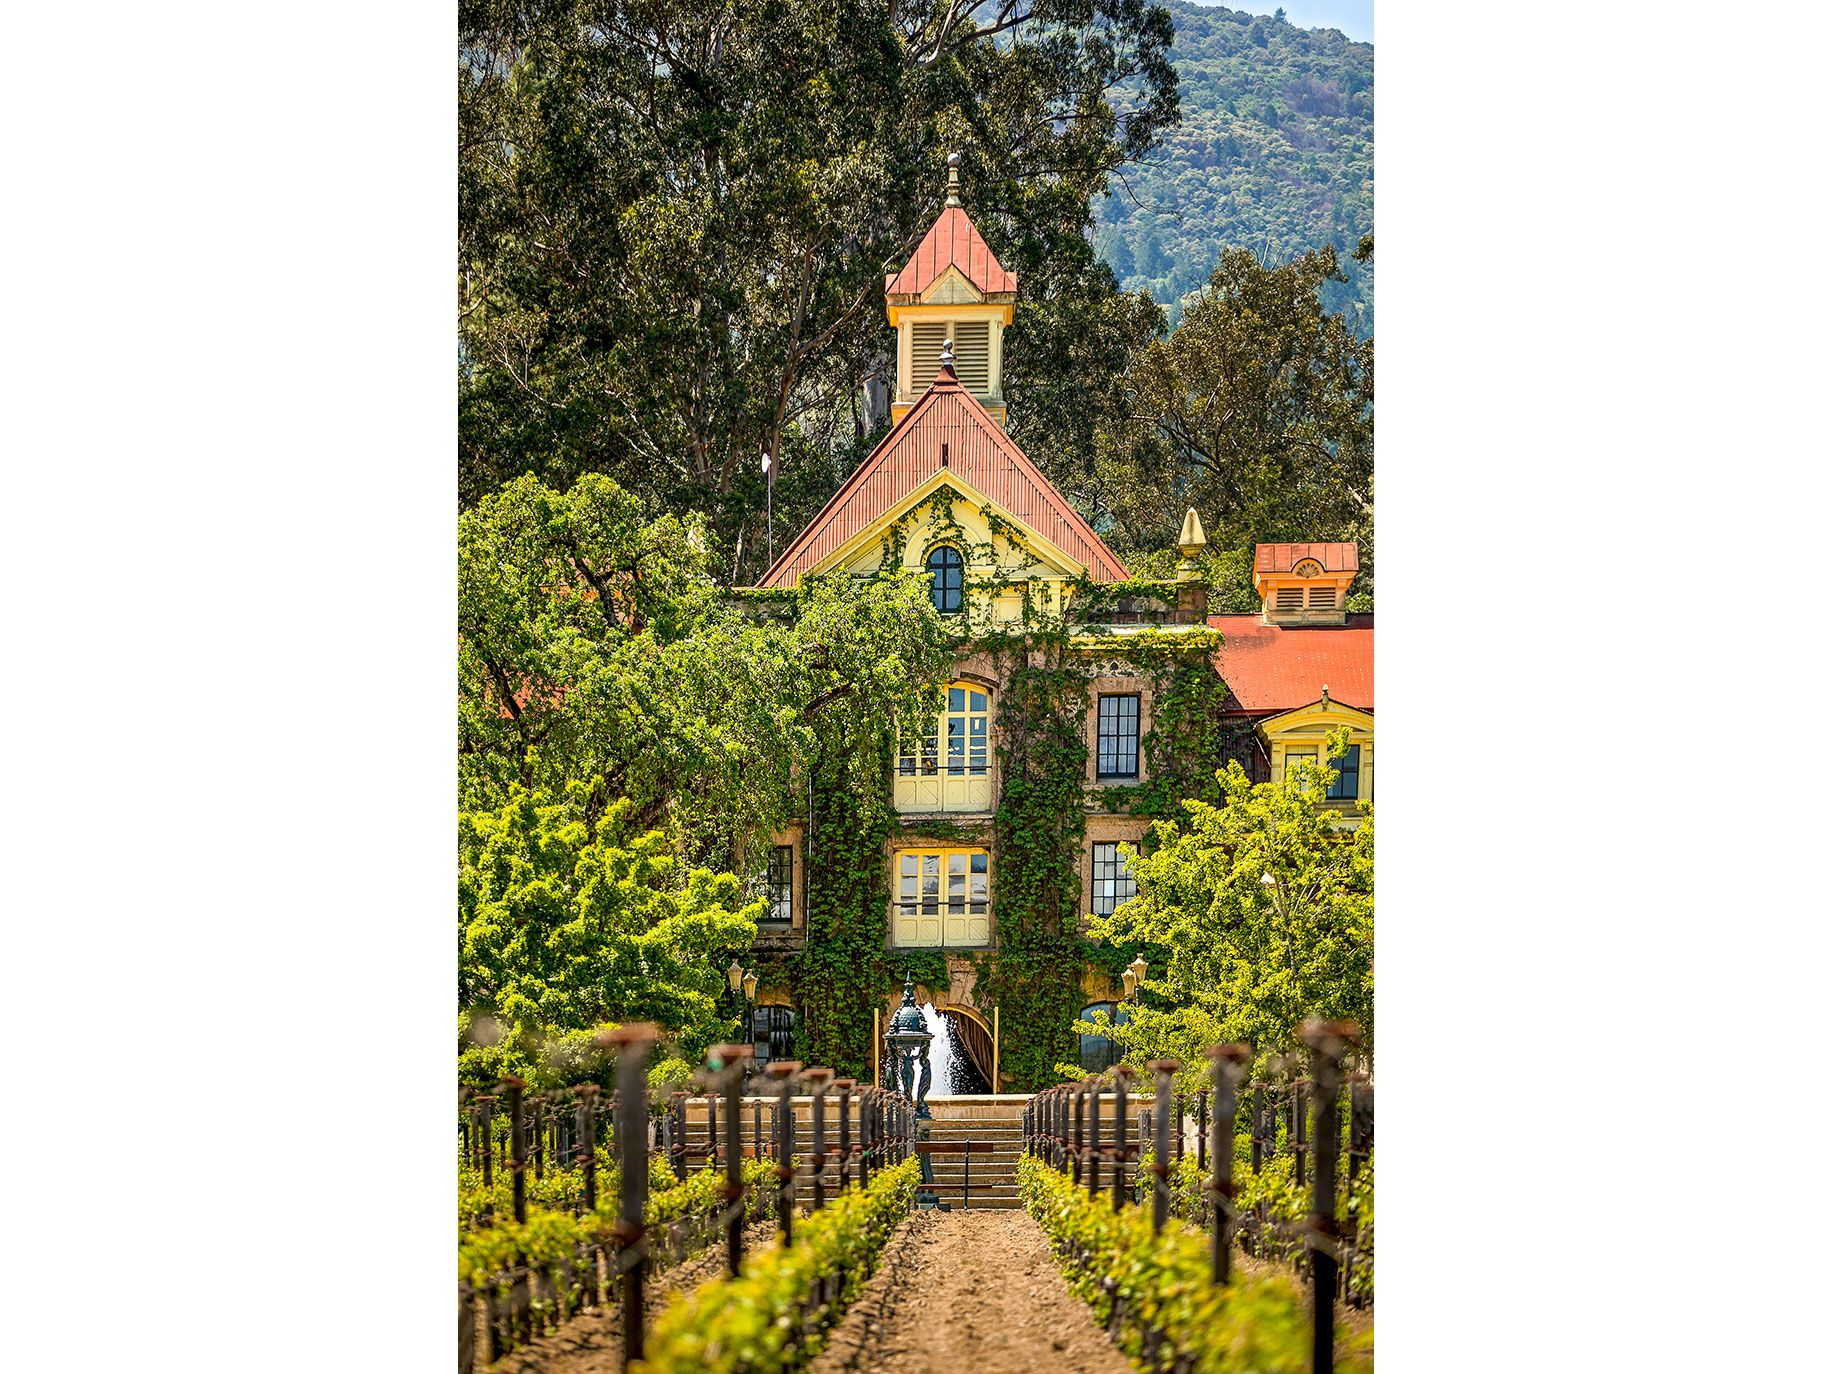 """The Inglenook Chateau, built by founder Gustave Niebaum and restored by Francis Ford Coppola, is symbolic of Coppola's efforts to return Inglenook to winemaking prominence. The chateau includes a small museum celebrating Coppola's movies like """"The Godfather"""" trilogy and """"Apocalypse Now."""""""